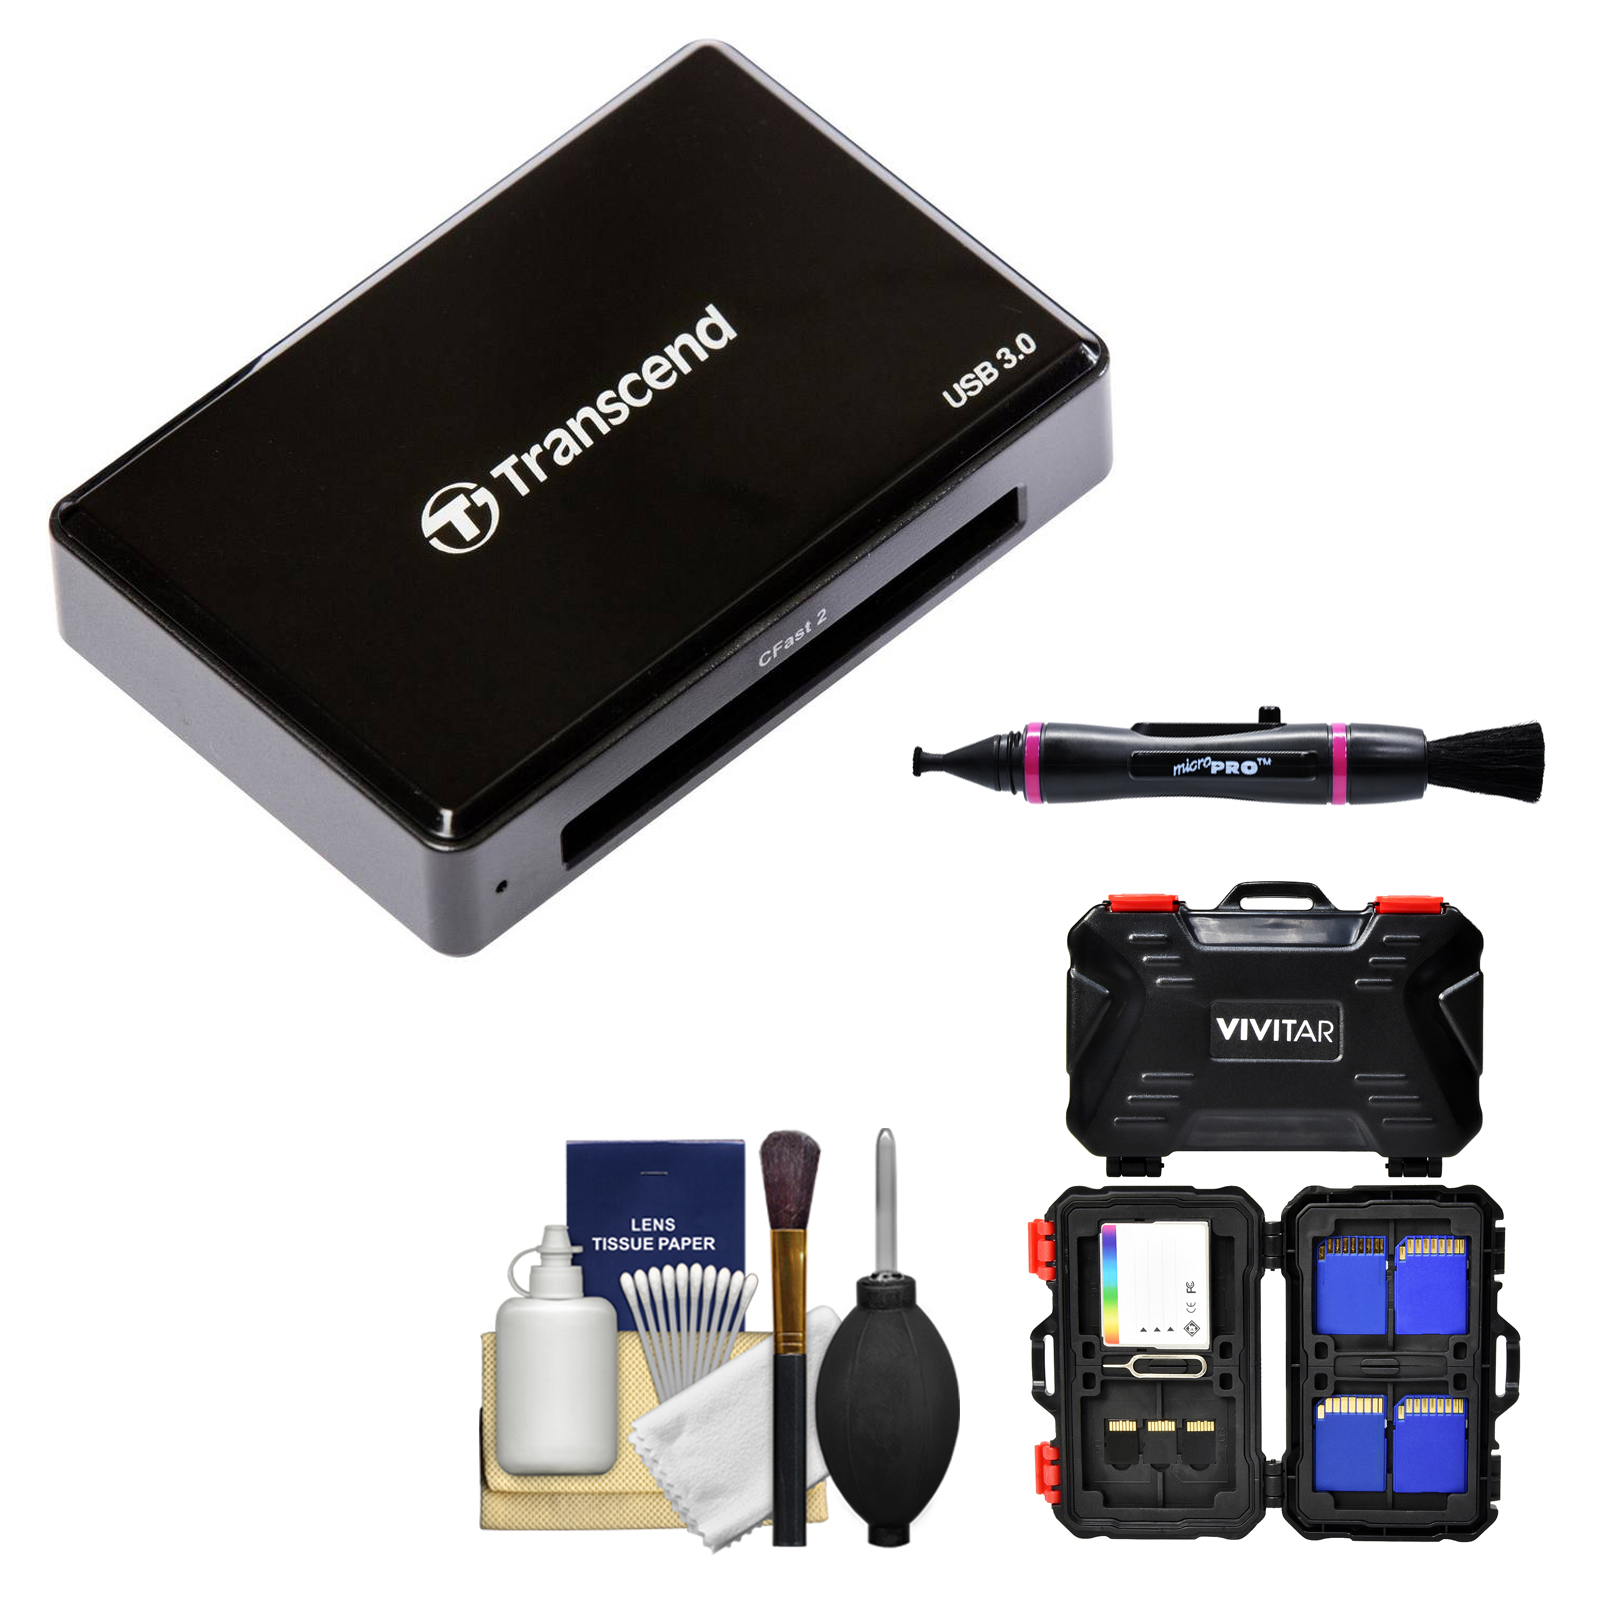 Transcend TS-RDF2 CFast 2.0 USB 3.1 Card Reader with Memory Card Case + Cleaning Kit